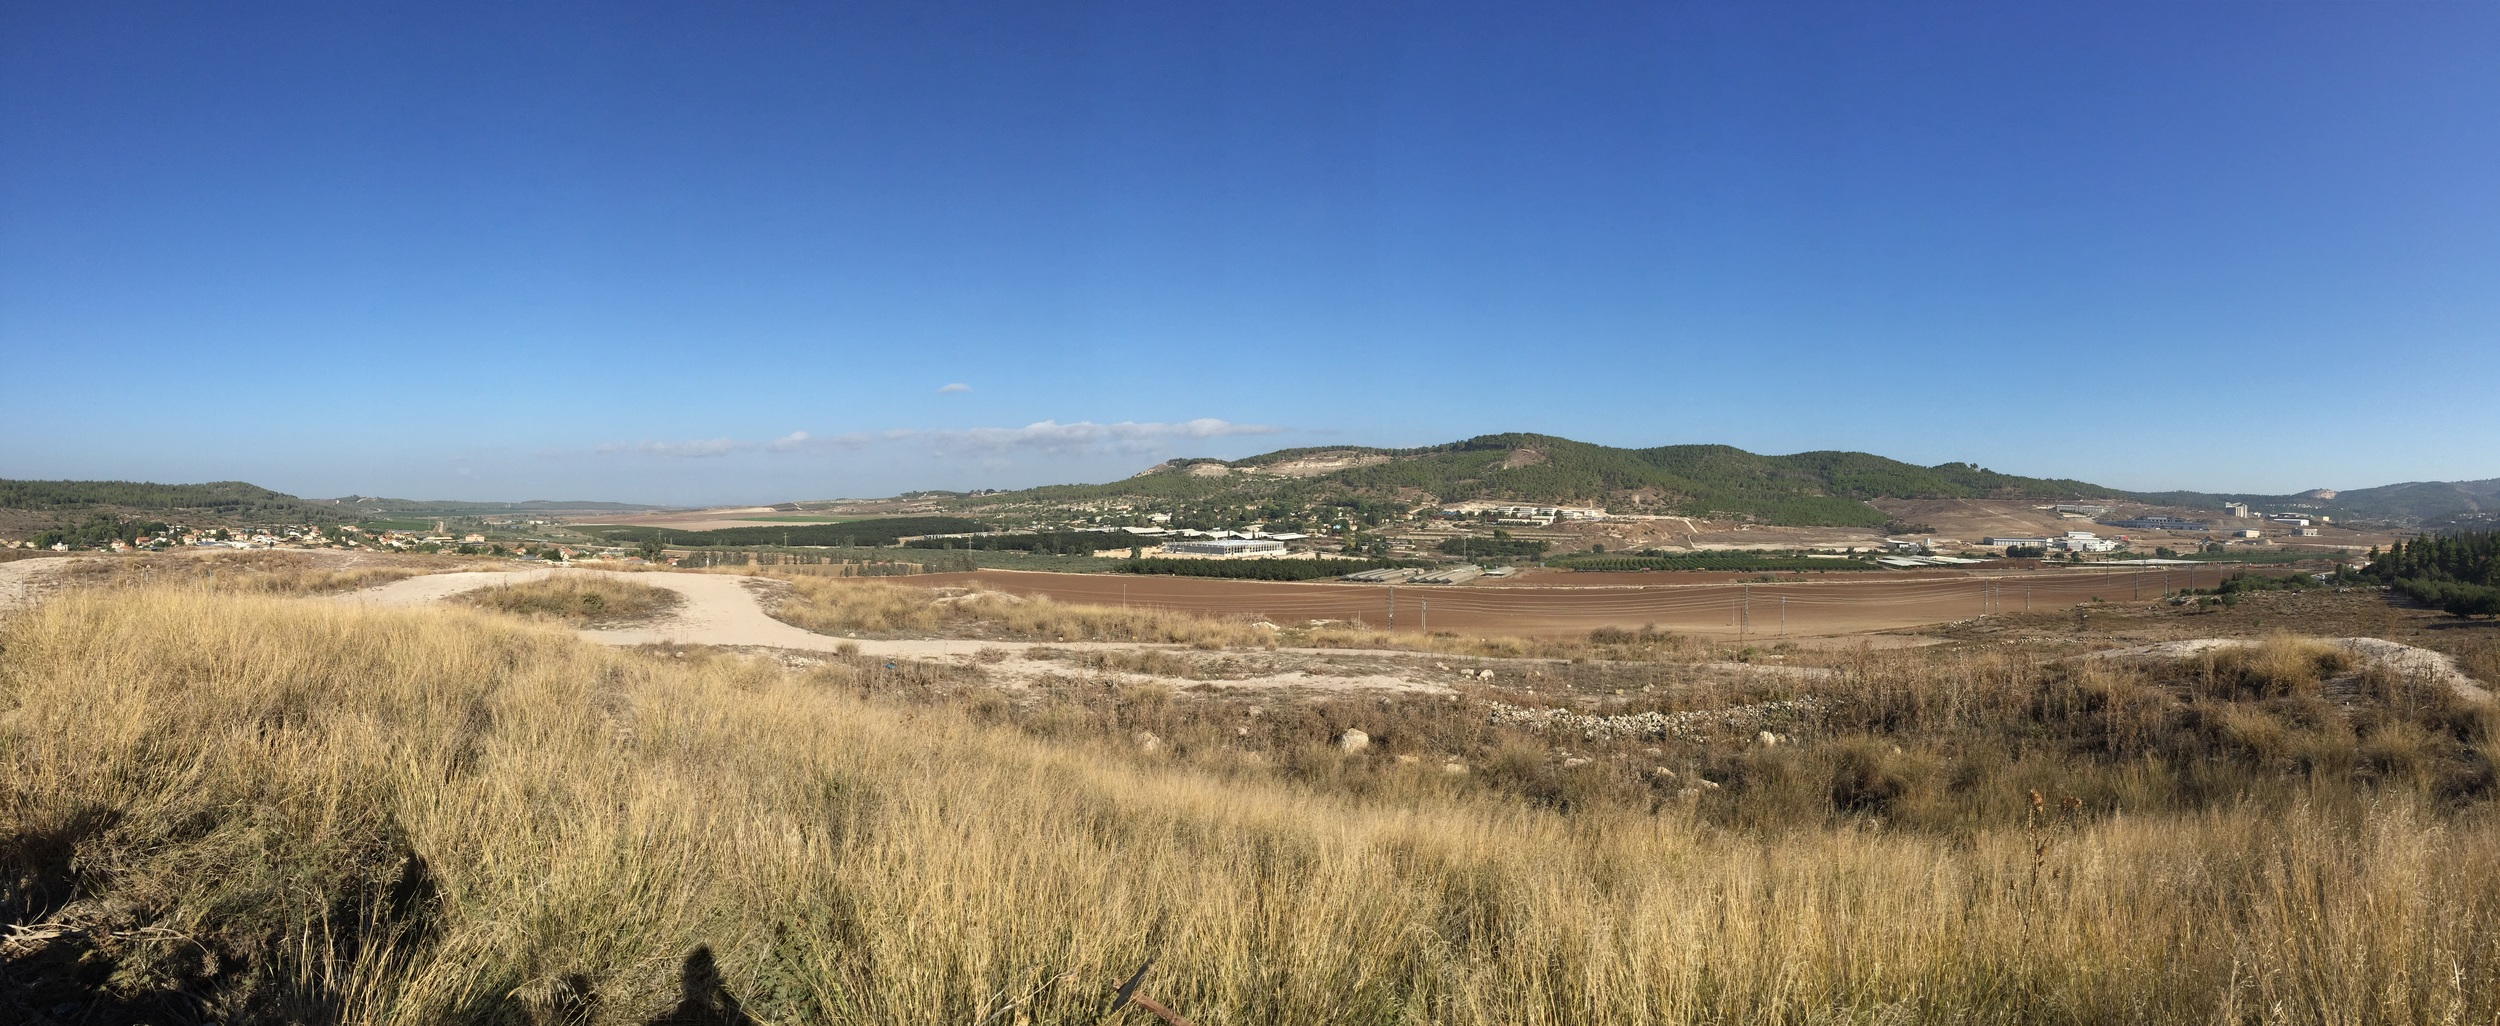 This is a panoramic view of the north side of the Sorek valley. Through the valley in the distance on the left of the photo is Tel Azekah, and on the right side of the green hill with the tree standing alone is the area where Zoar would have been. The photo was taken from the tel of Beth-Shemesh. One of the significant Biblical events that took place in this valley is when the Philistines returned the Ark of the Covenant by way of a wooden cart pulled by oxen. The Israelites in Beth-shemesh would have heard the oxen lowing as they saw the driverless cart rolling up the valley from the left (2 Sam. 5-6). It was in Beth-shemesh that they used the wooden cart as fuel to offer the oxen as an offering to God on a great stone. It was also in Beth-Shemesh where 70 people died because they looked into the ark and decided to place it in storage at Kireath-Jearim for 20 years.